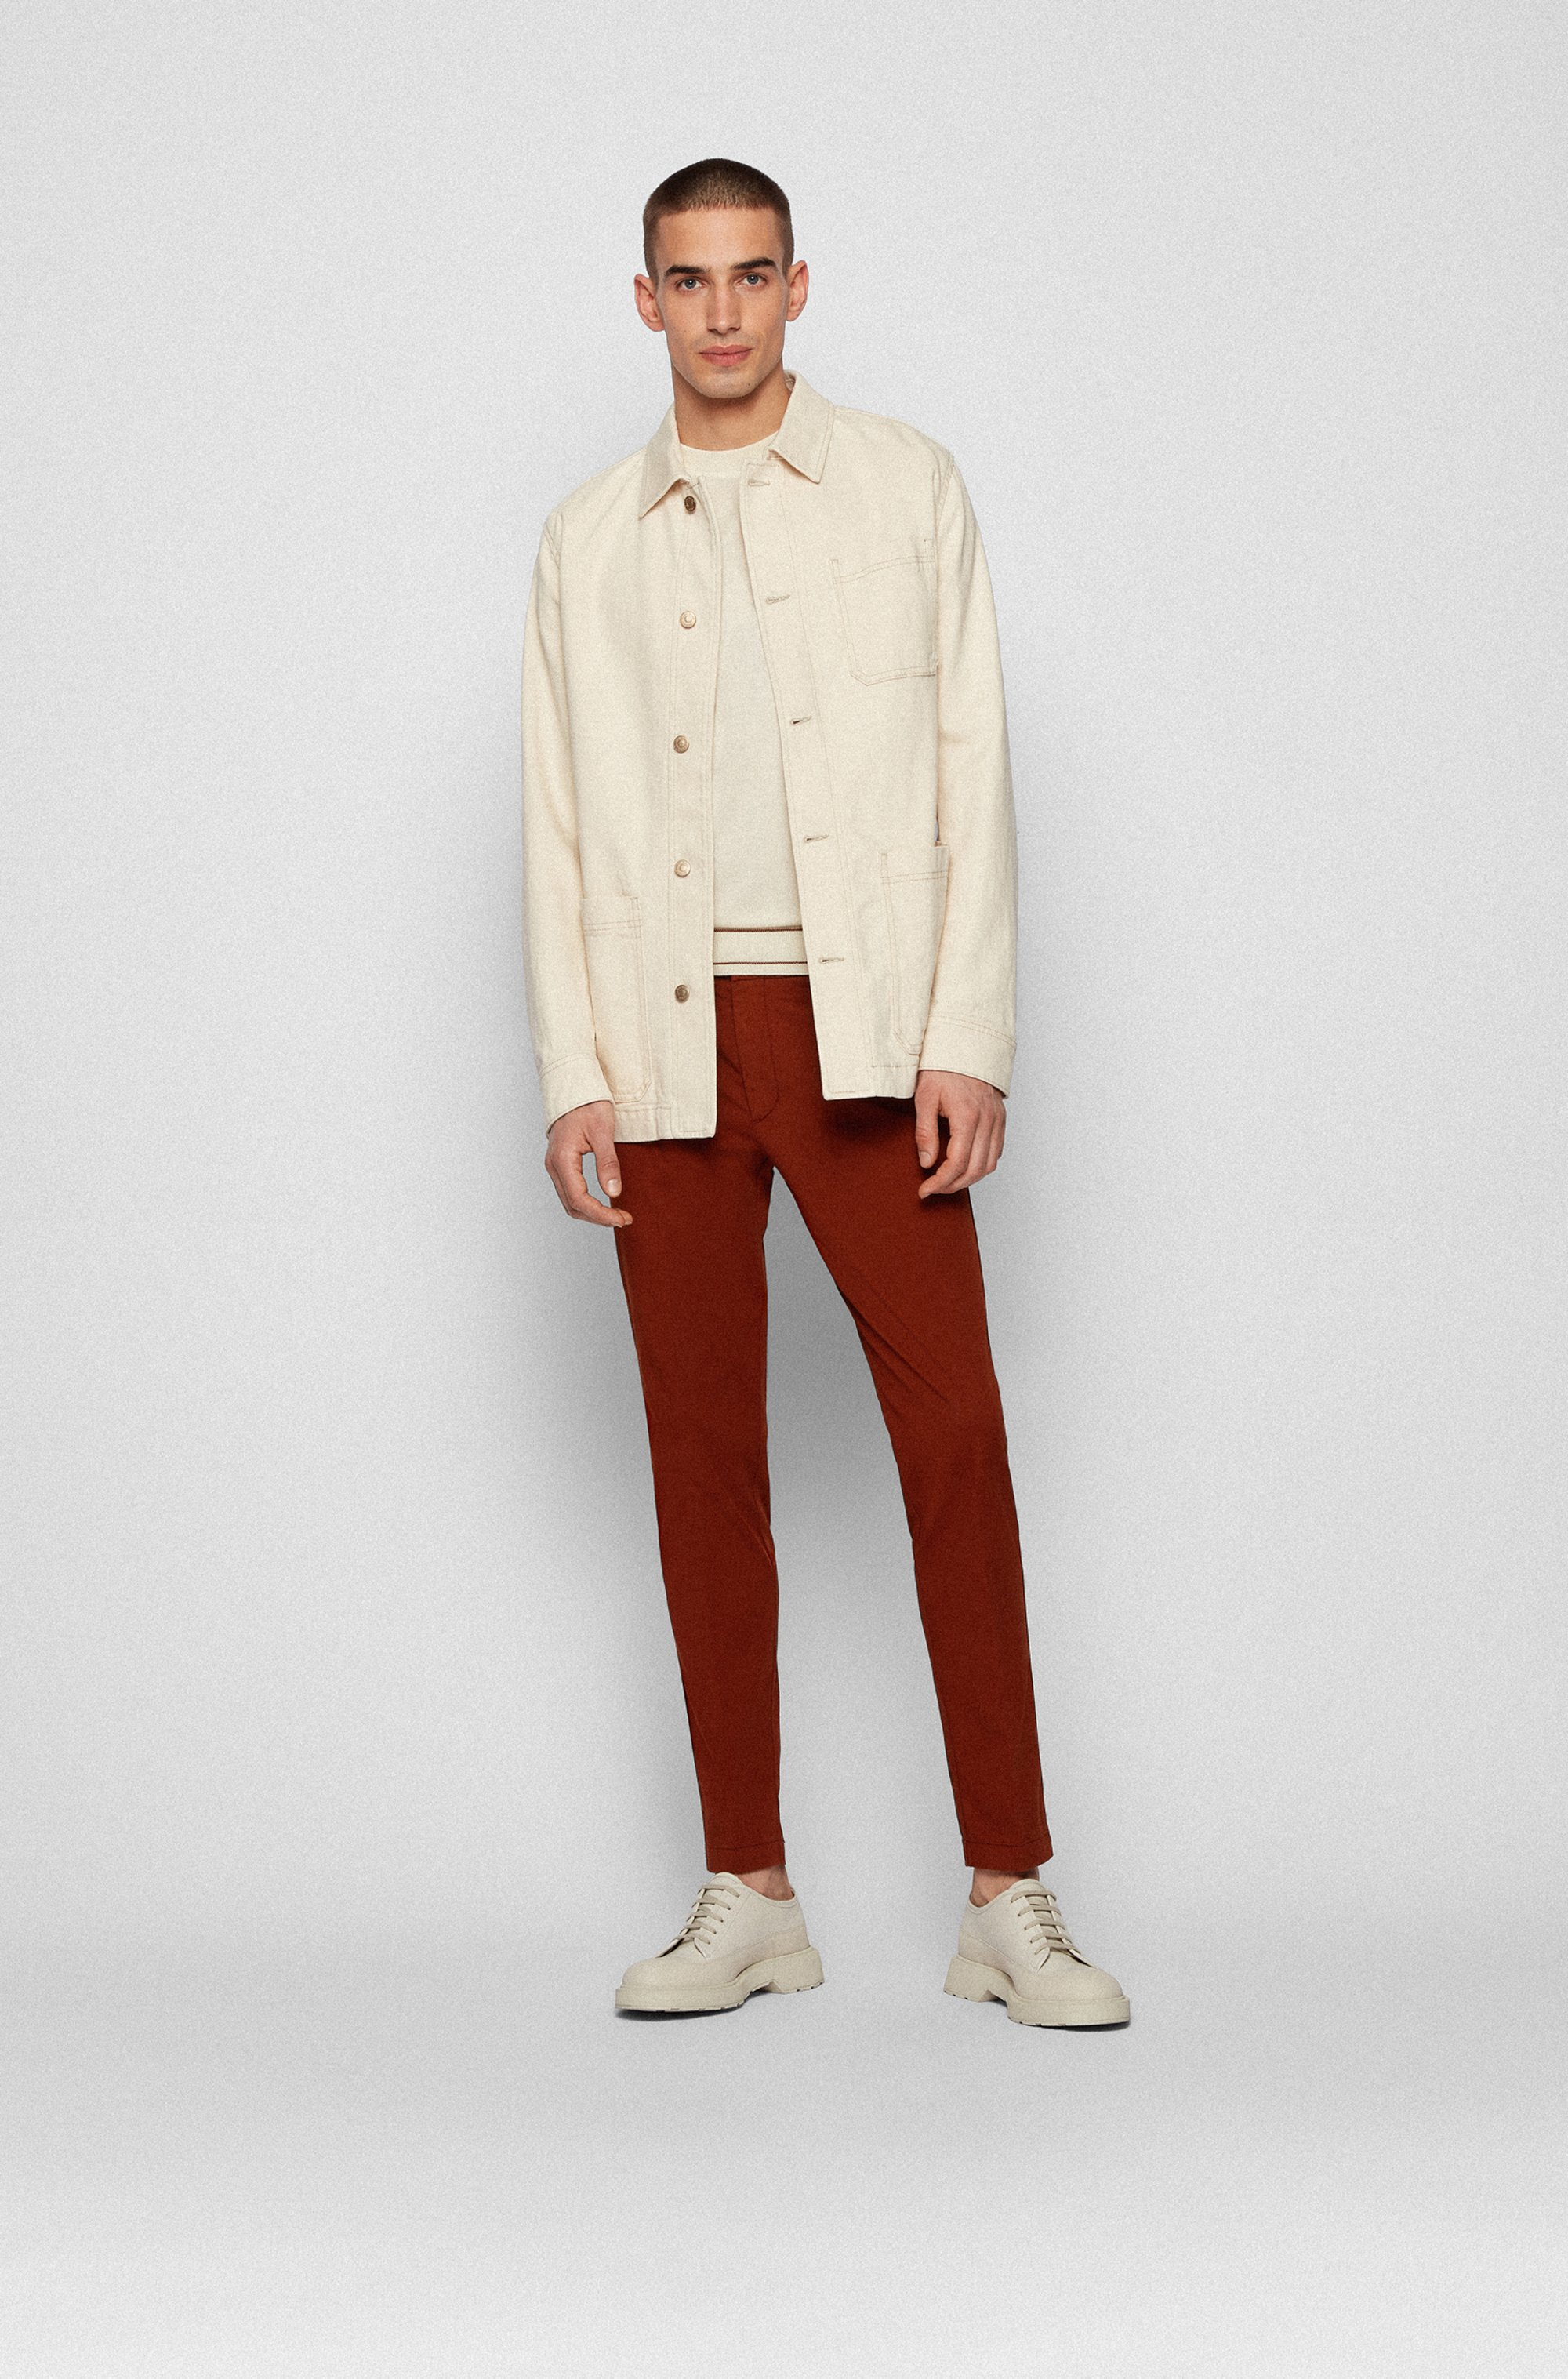 T-shirt-style sweater in mercerised cotton